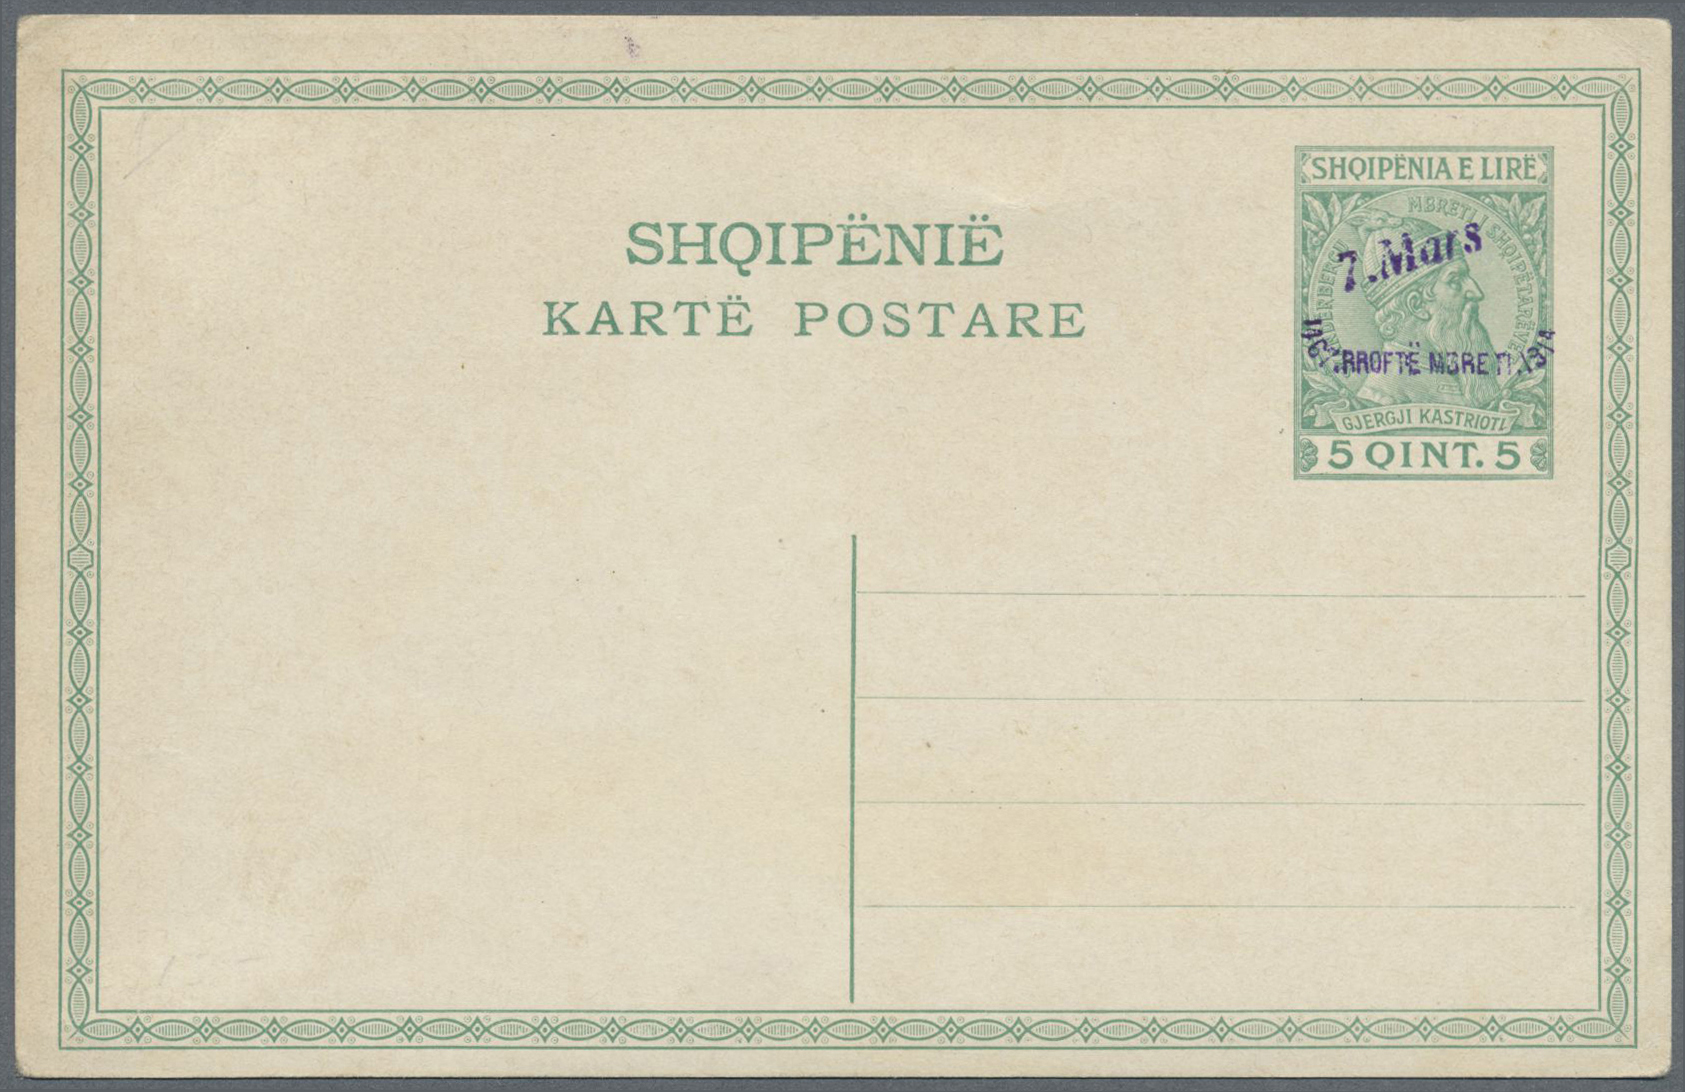 Lot 15561 - Albanien - Ganzsachen  -  Auktionshaus Christoph Gärtner GmbH & Co. KG Single lots Philately Overseas & Europe. Auction #39 Day 4